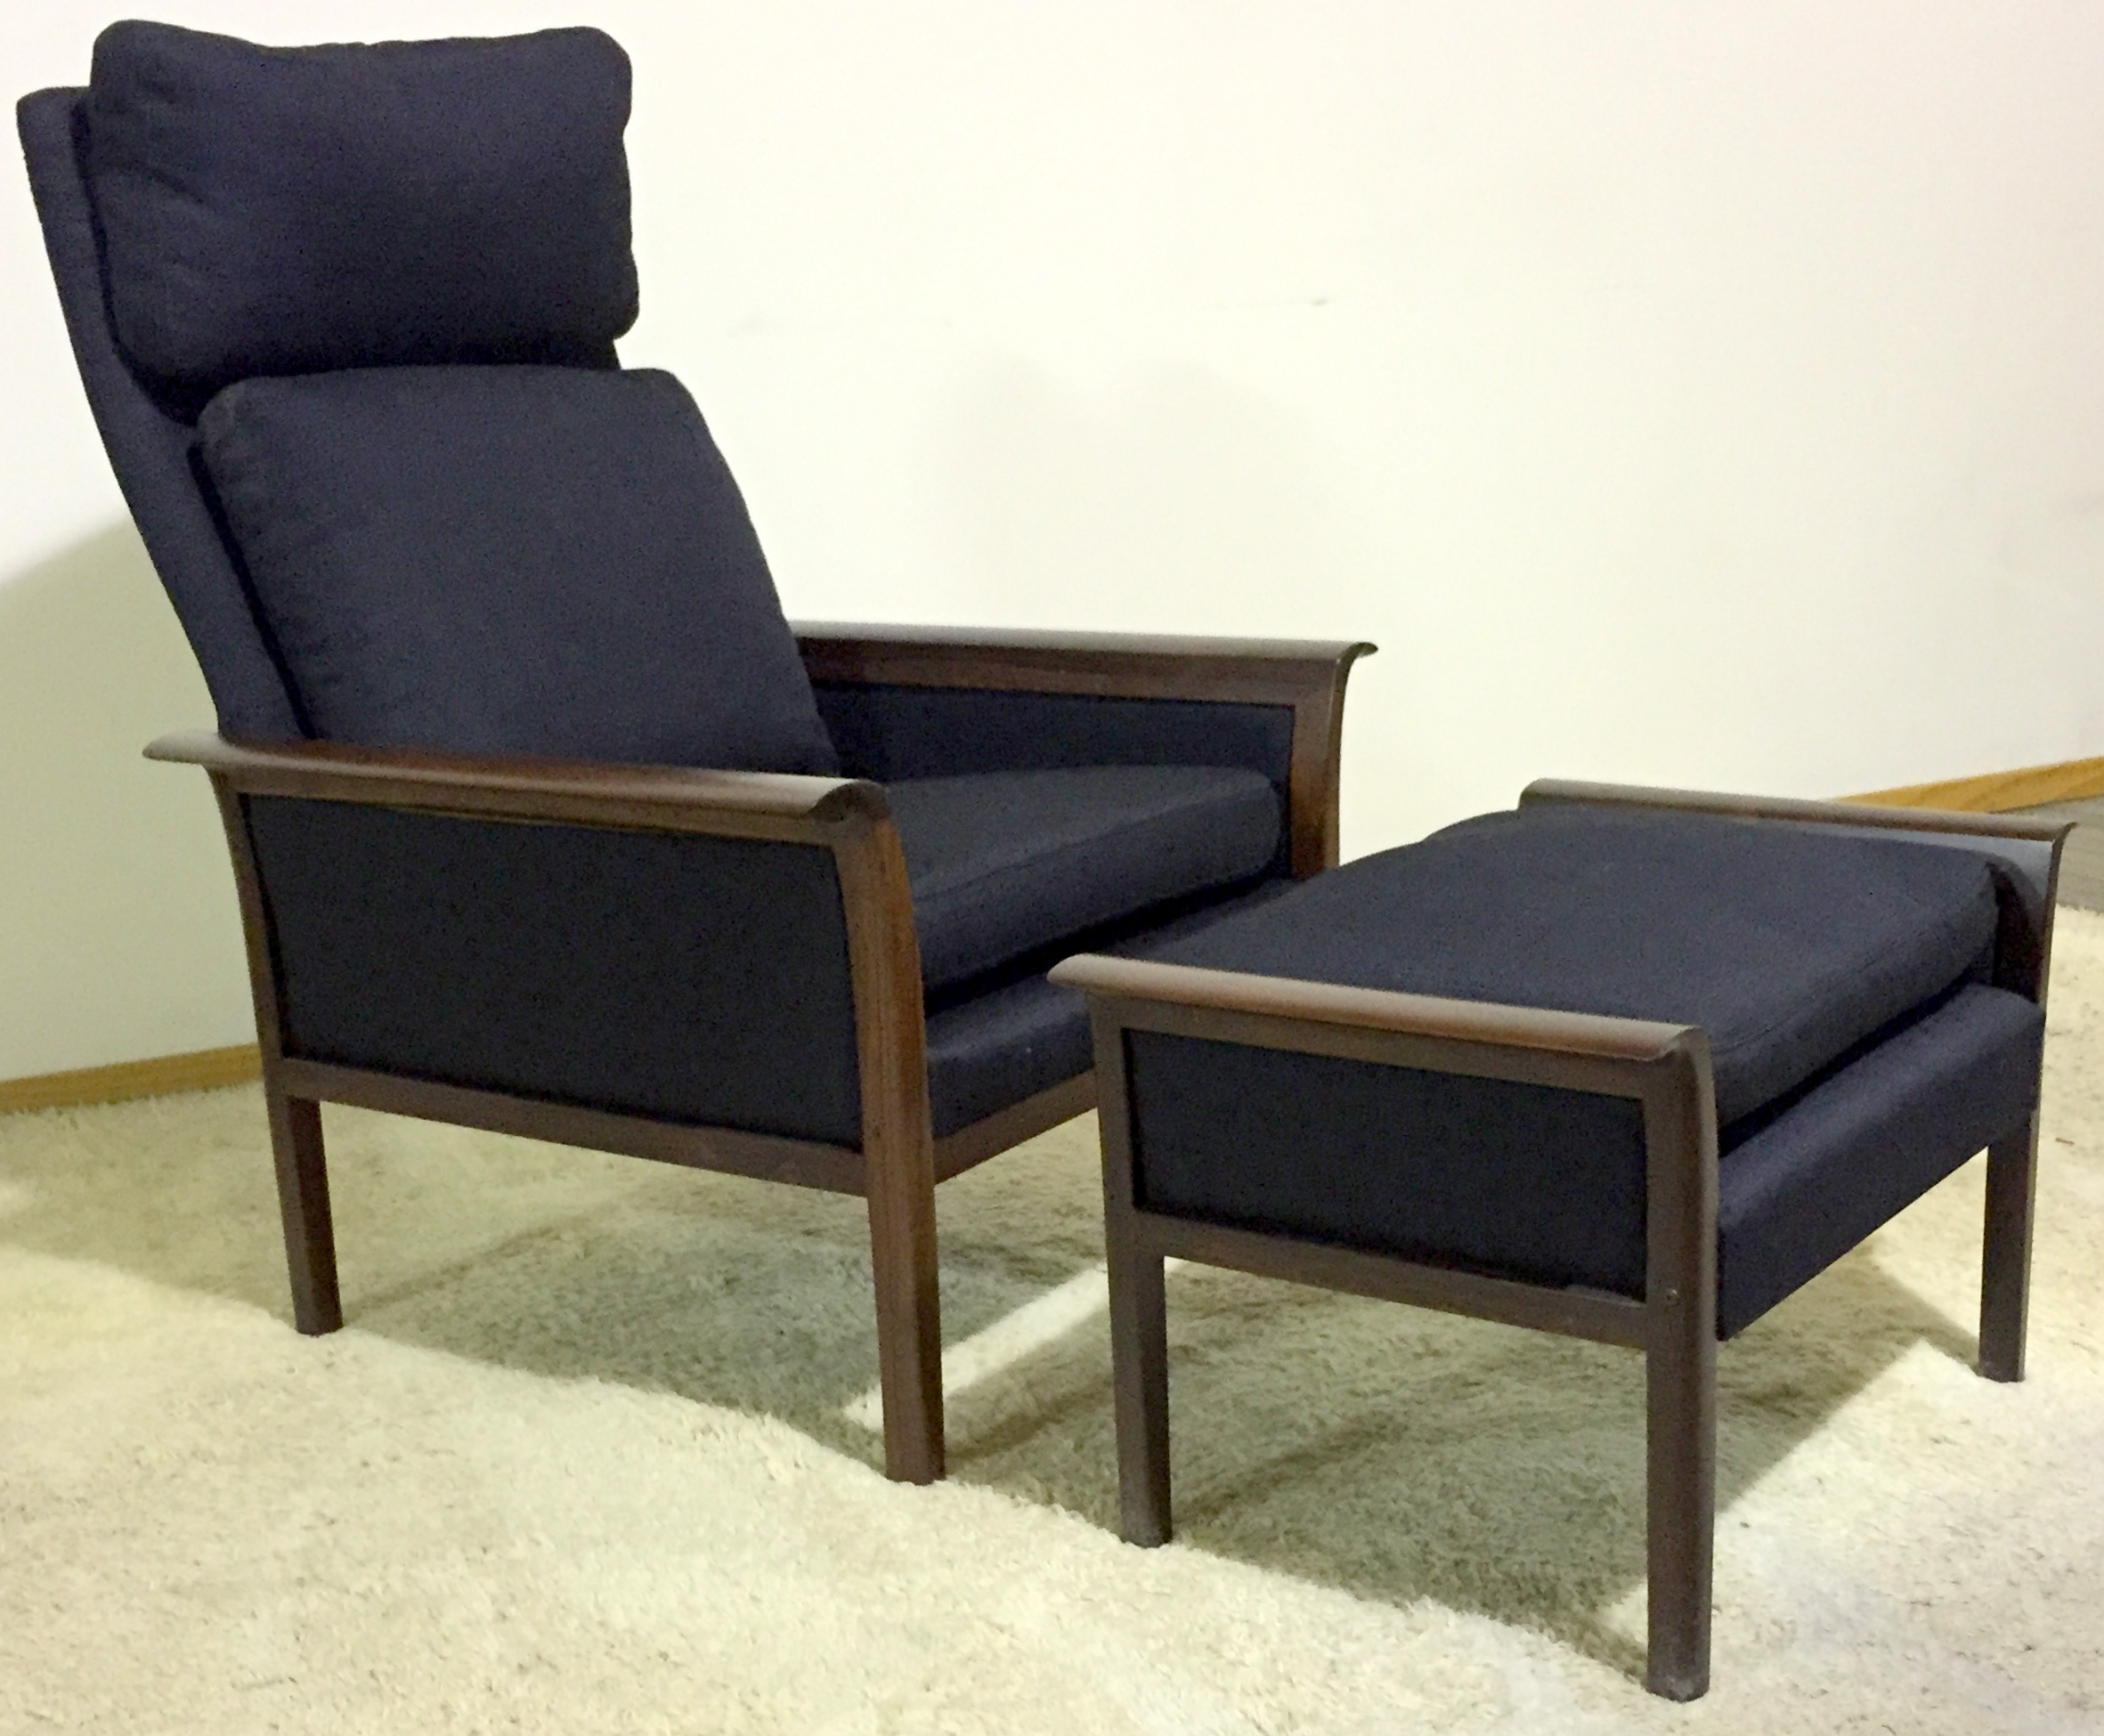 Vatne Mobler Rosewood Lounge Chair And Ottoman By Hans Olsen